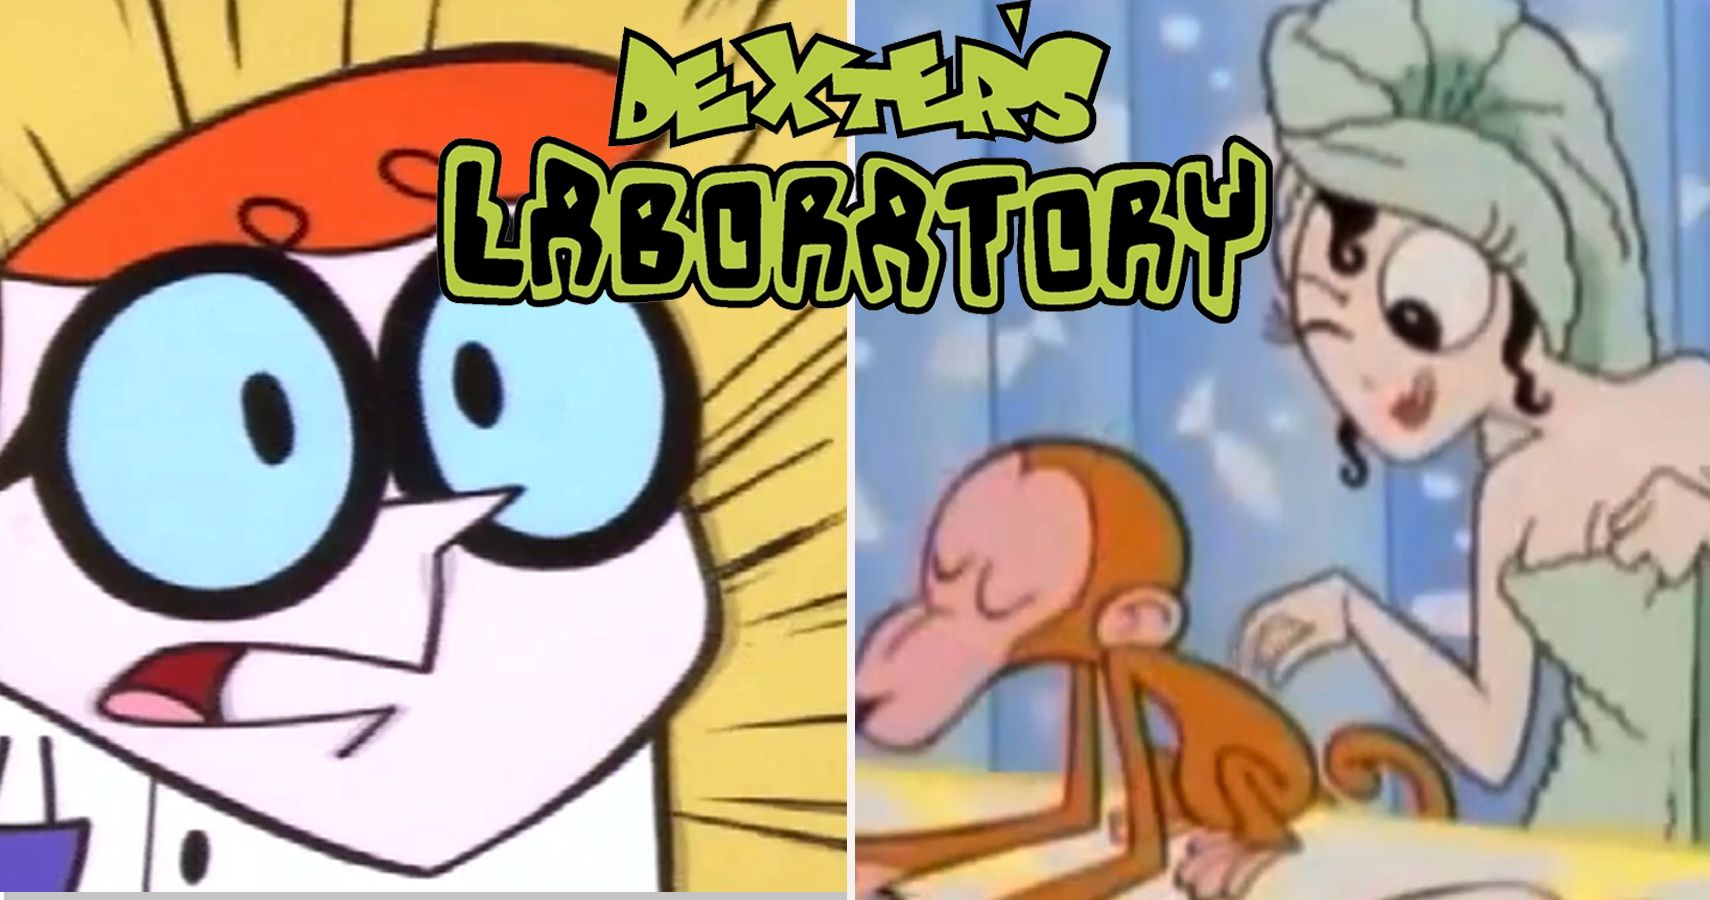 Dexters laboratory mommy daddy photo 1